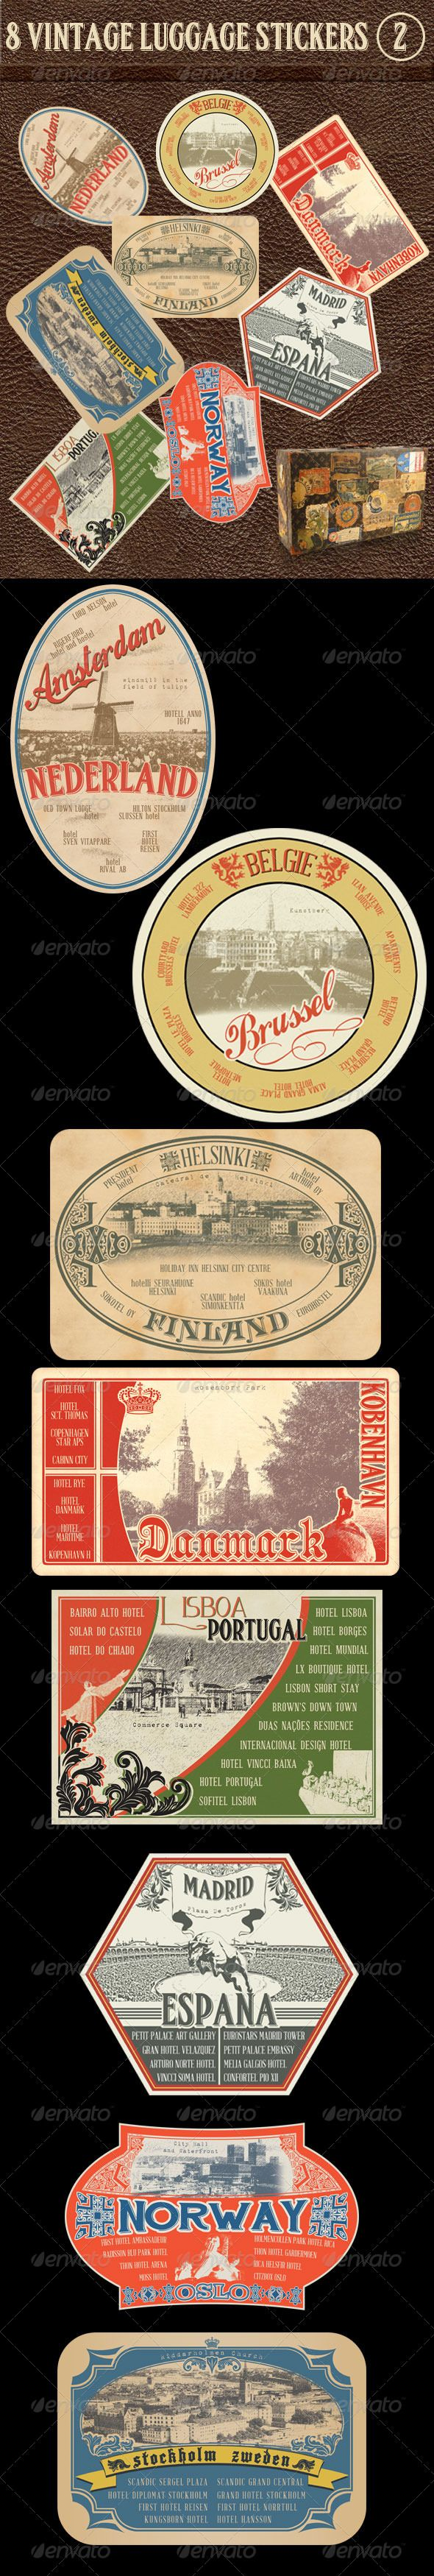 8 Vintage Luggage Stickers 2  #GraphicRiver        This is a collection(2) of 8 professional designed Vintage luggage stickers for any tourism, vacation, travel web site and print. All Photoshop files are easily layered and editable.